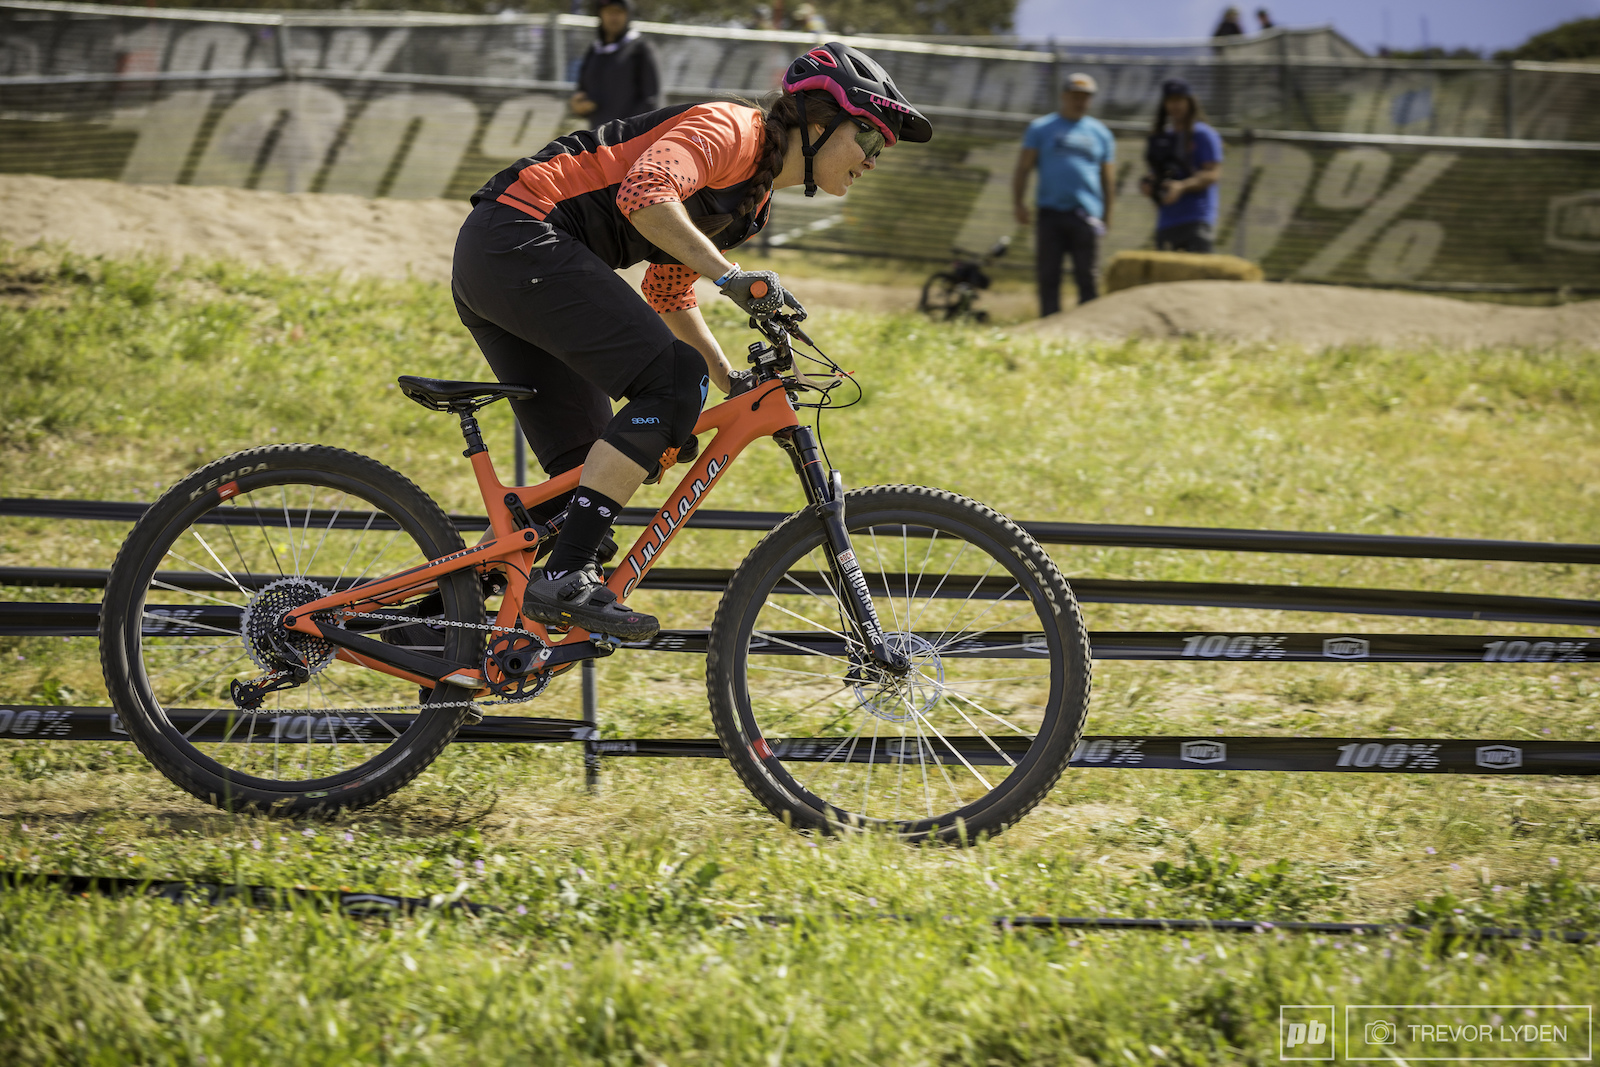 Even with stage 4 on the dual slalom track riders like Ileana Anderson still had to get on the pedals for the quickest times.